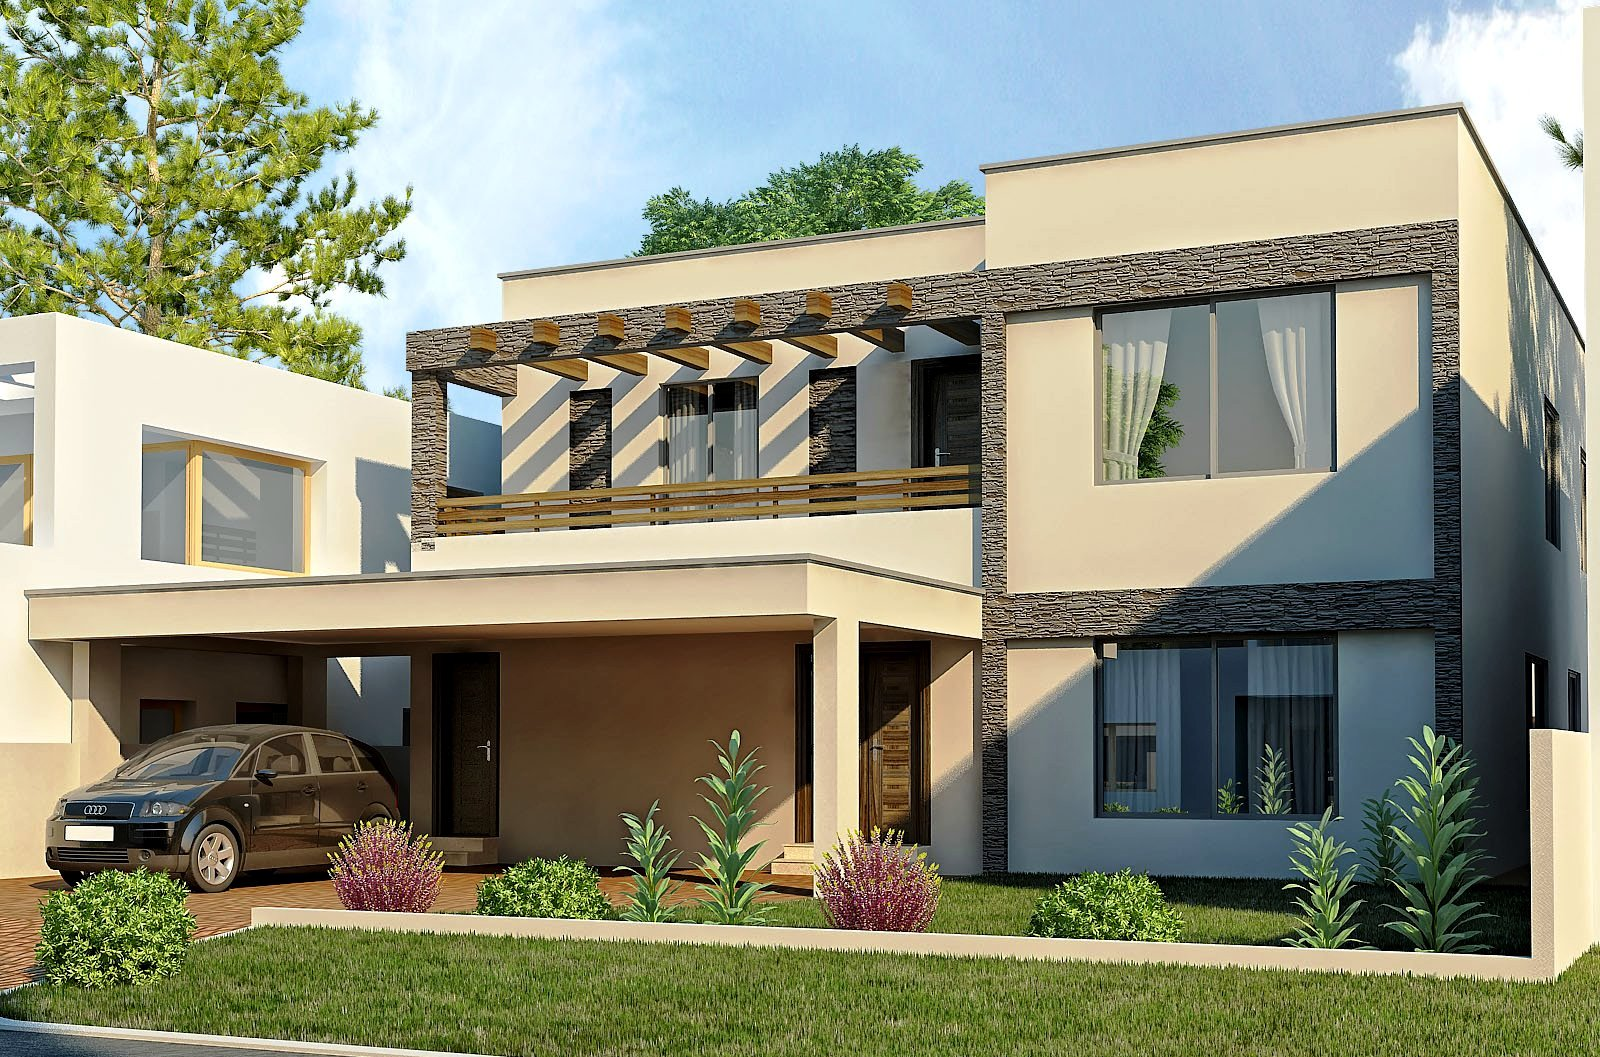 New home designs latest modern homes exterior designs views for Modern exterior home design